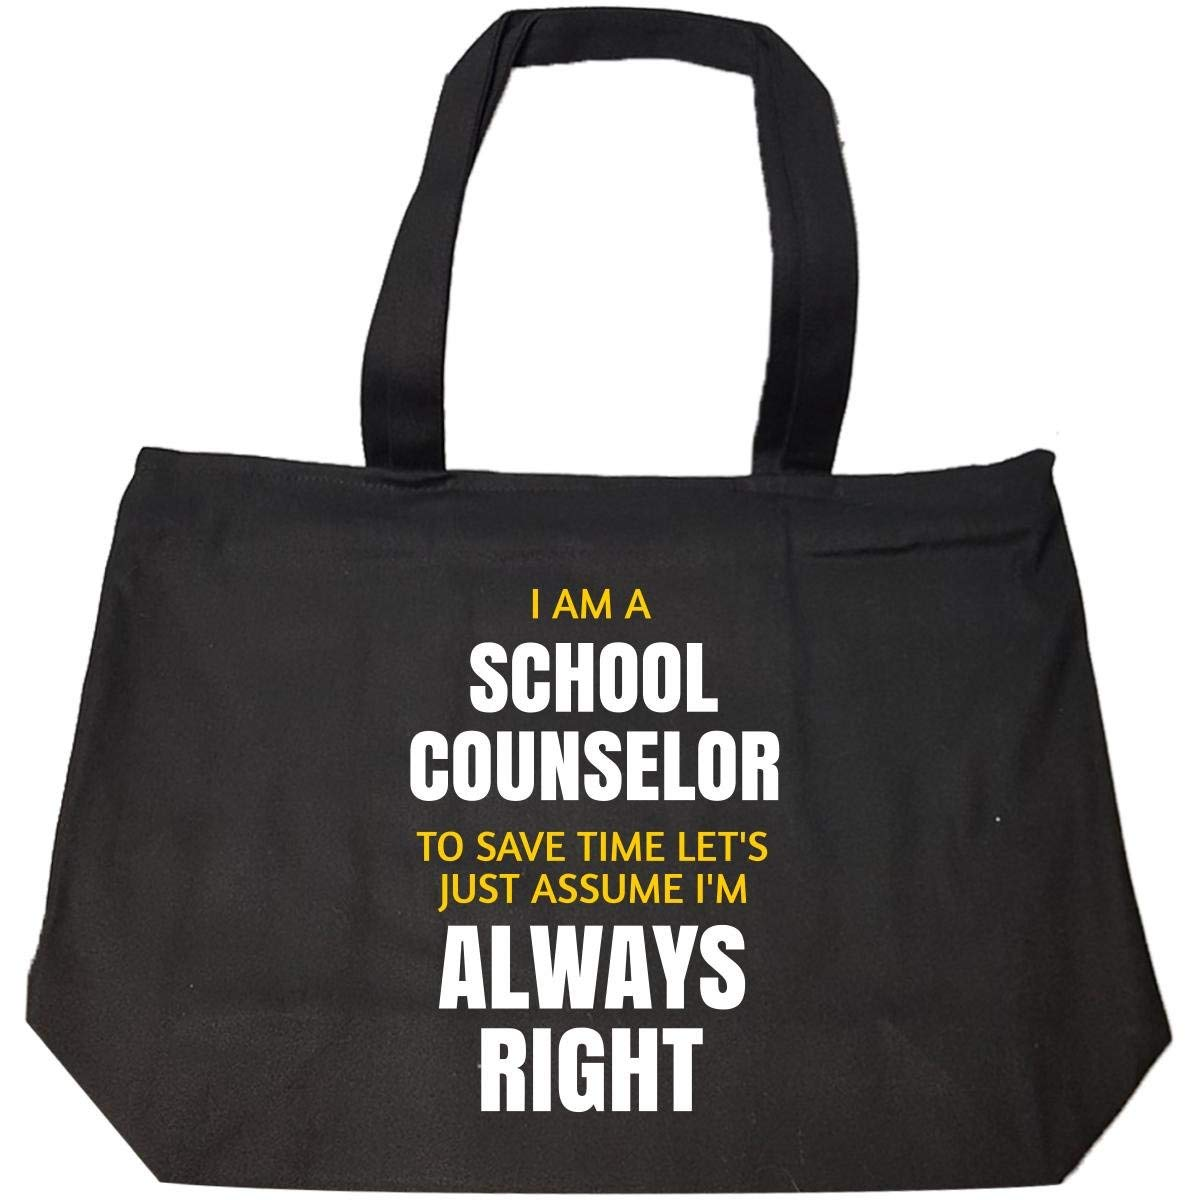 2e73dbad6 Get Quotations · I Am A School Counselor I'm Always Right Funny Gift - Tote  Bag With